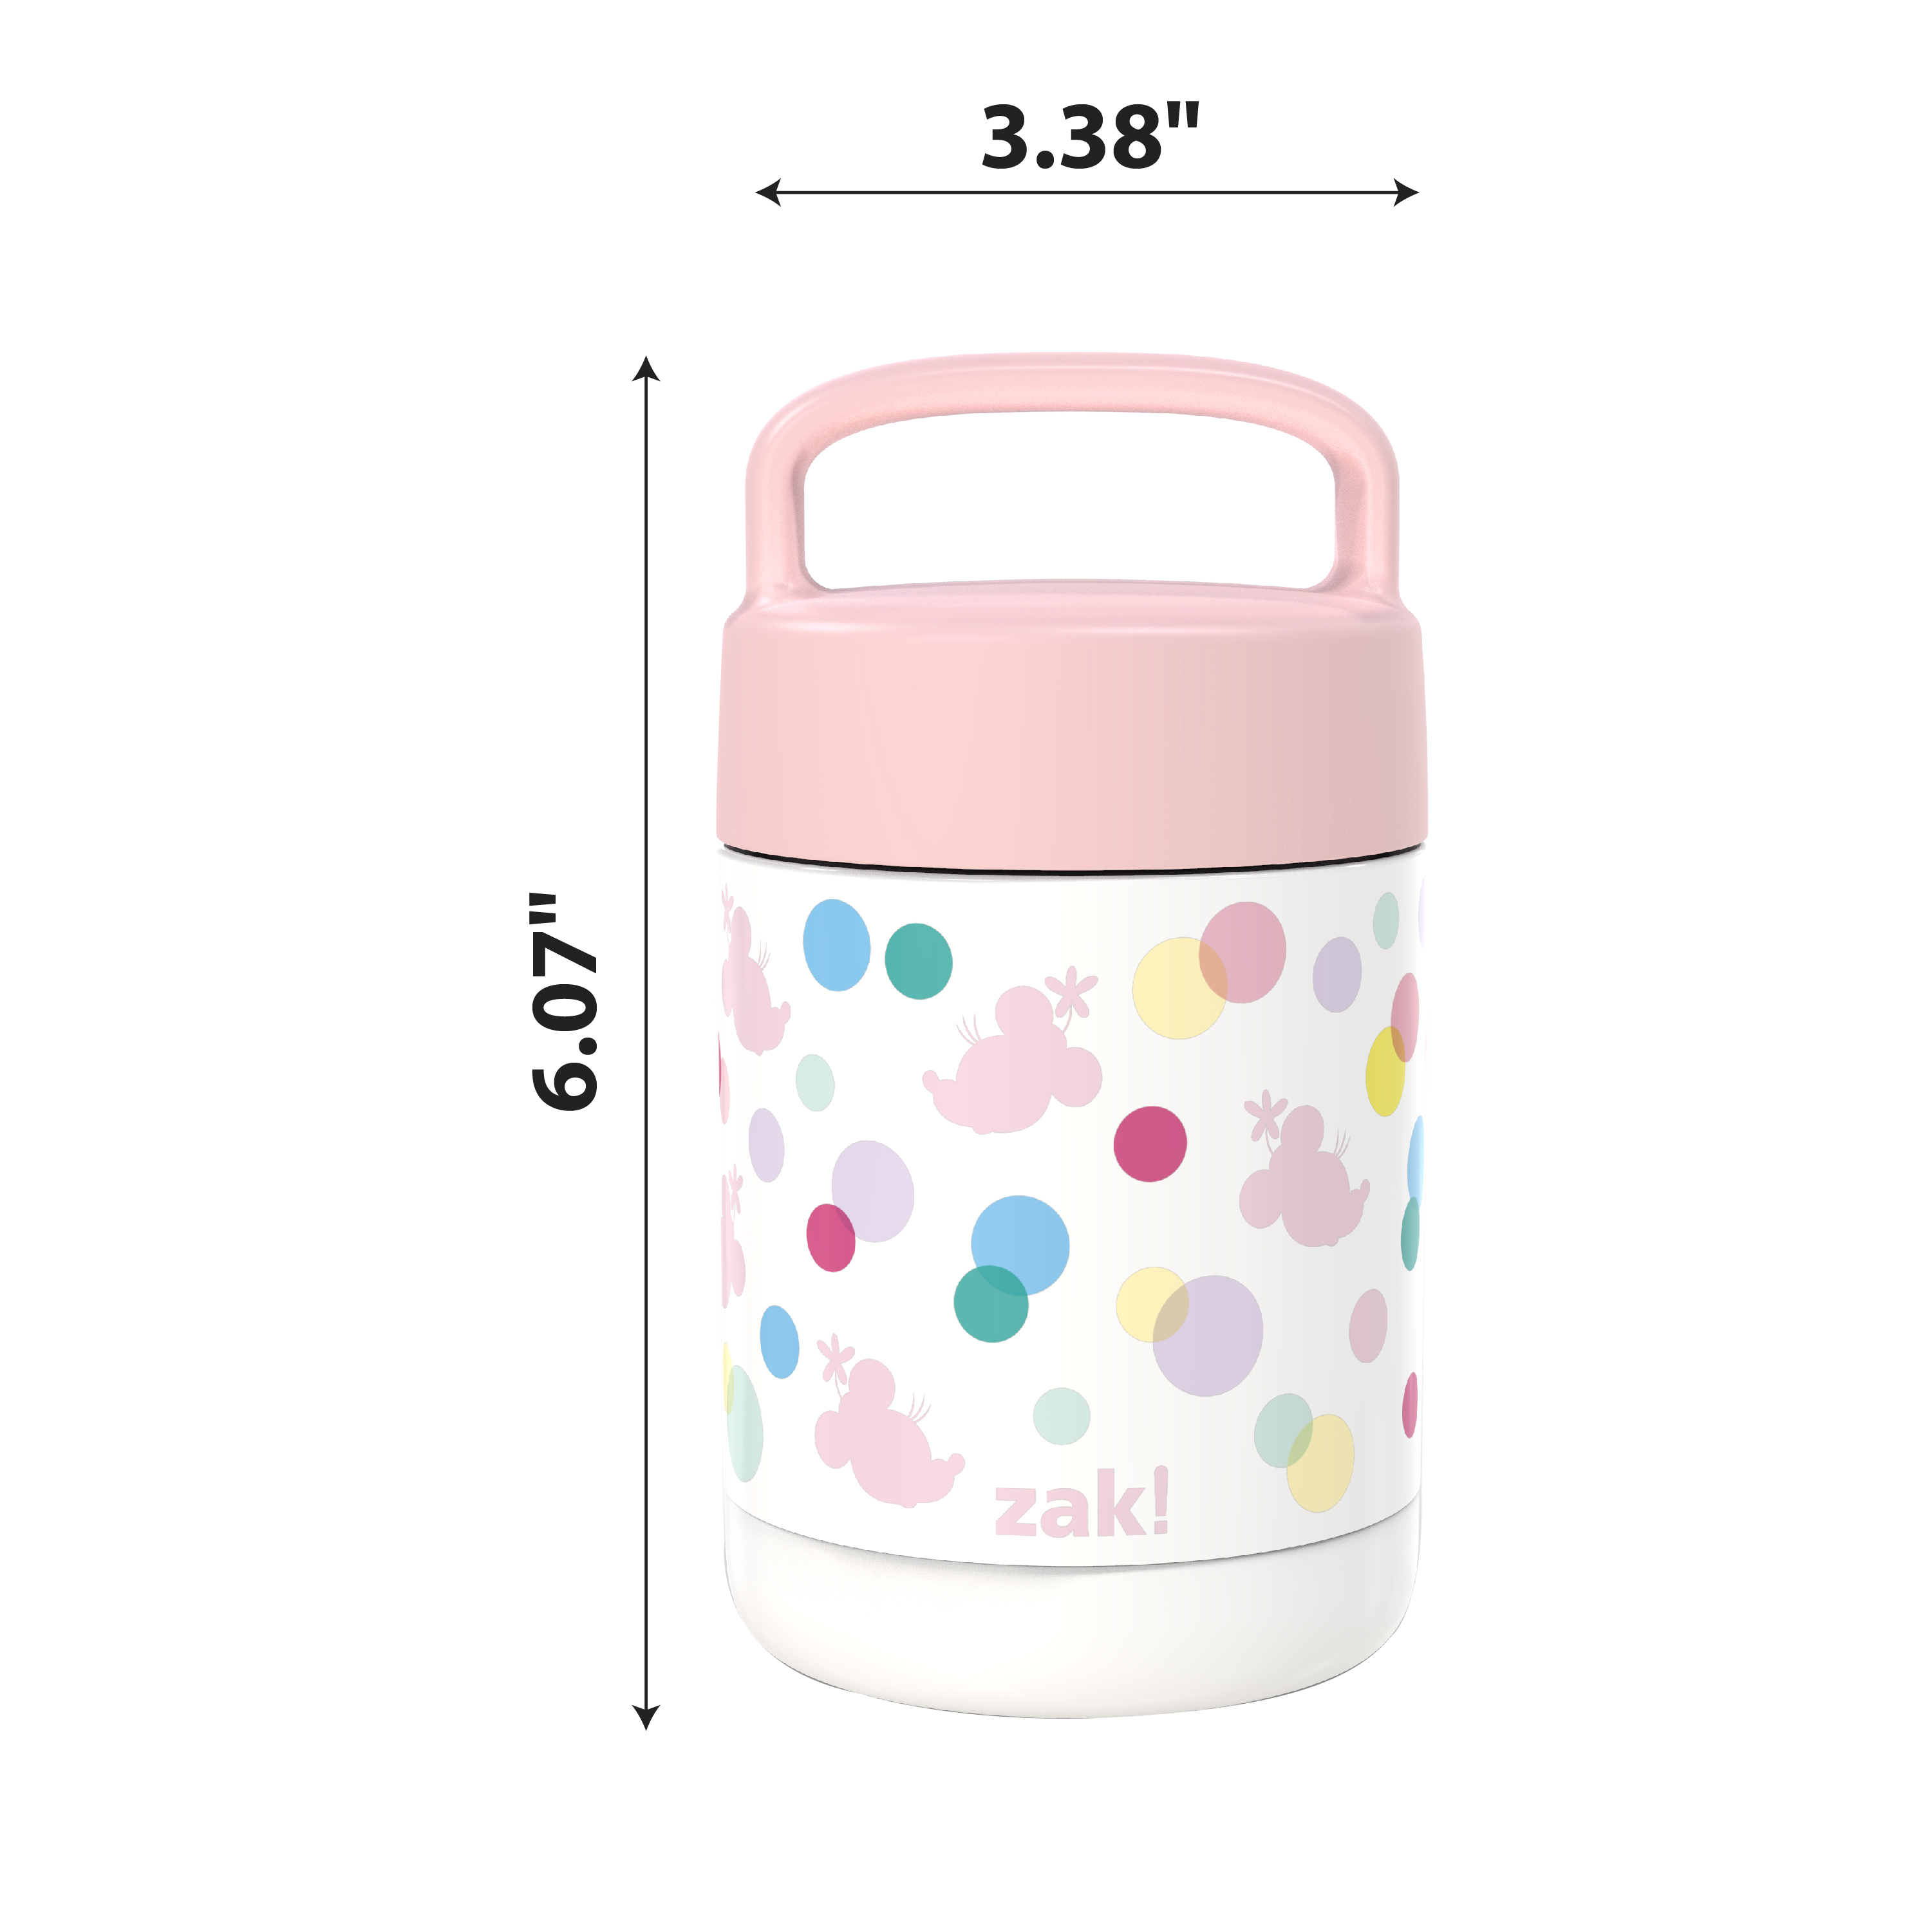 Disney Reusable Vacuum Insulated Stainless Steel Food Container, Minnie Mouse slideshow image 6